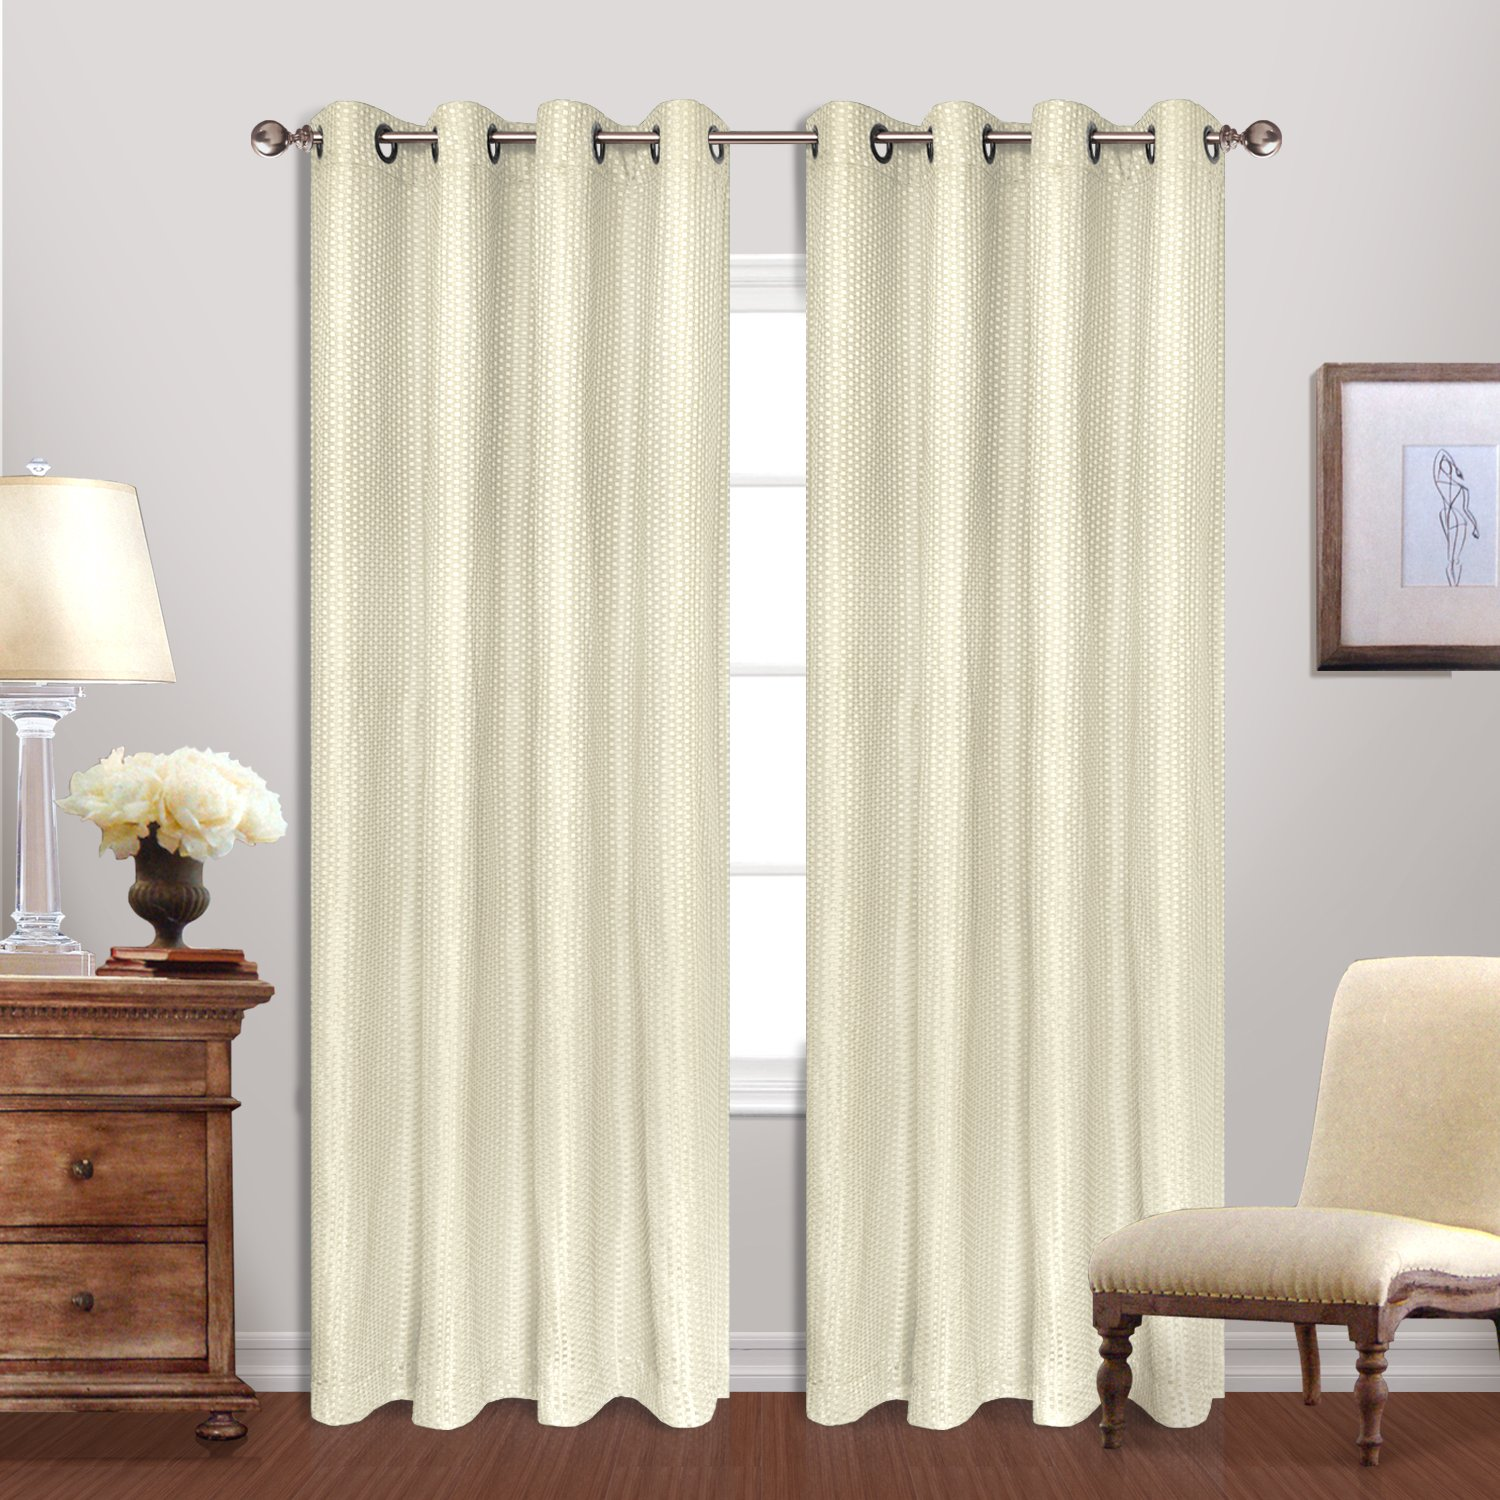 Amazon.com: United Curtain Hamden Woven Waffle Window Curtain Panel ...